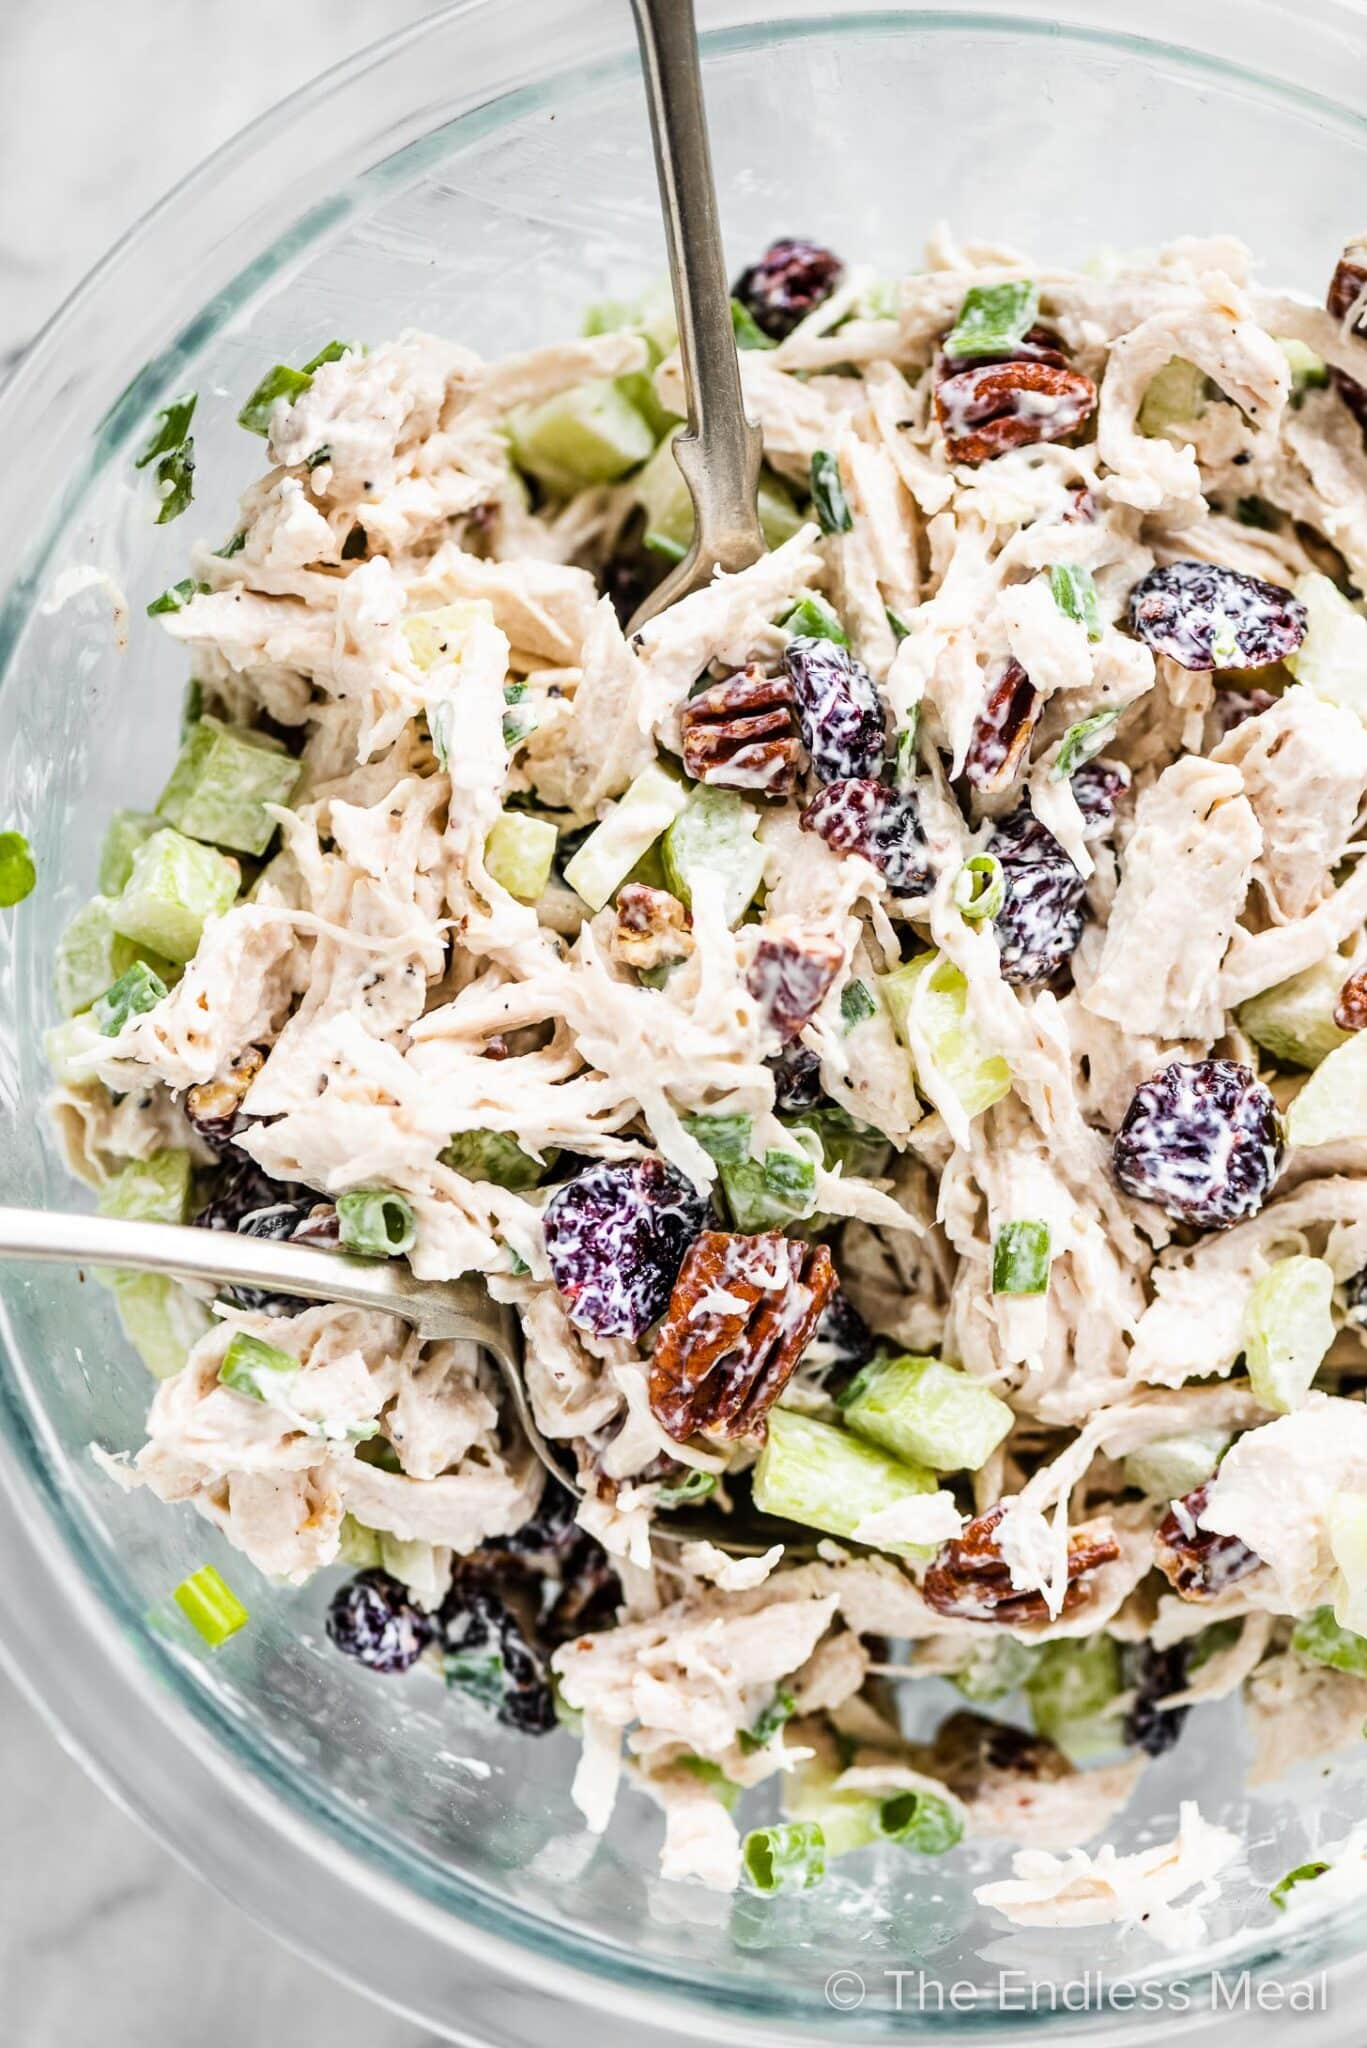 Cranberry chicken salad in a glass mixing bowl with serving spoons.